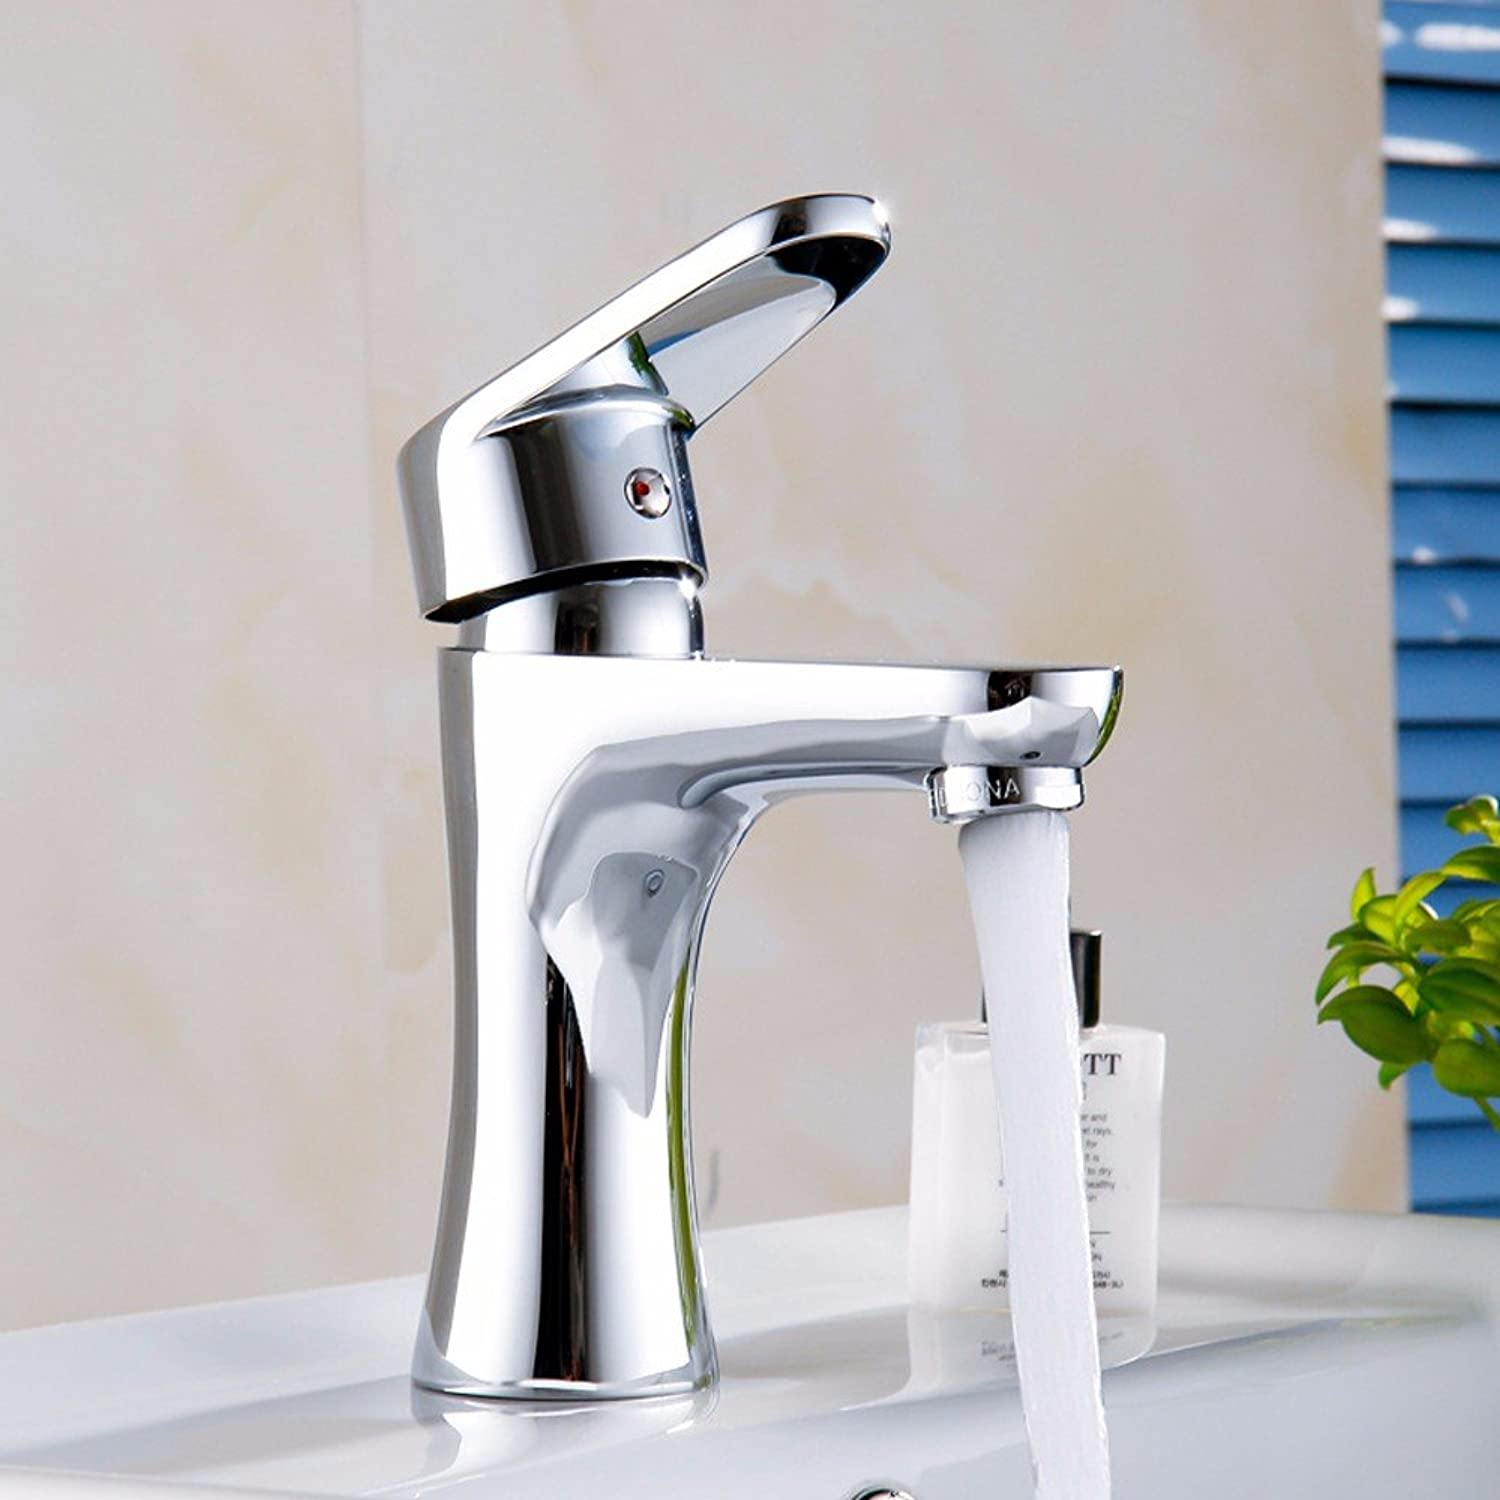 Hlluya Professional Sink Mixer Tap Kitchen Faucet The copper cold water faucet, Tower One-on-one-hole Mixer Taps